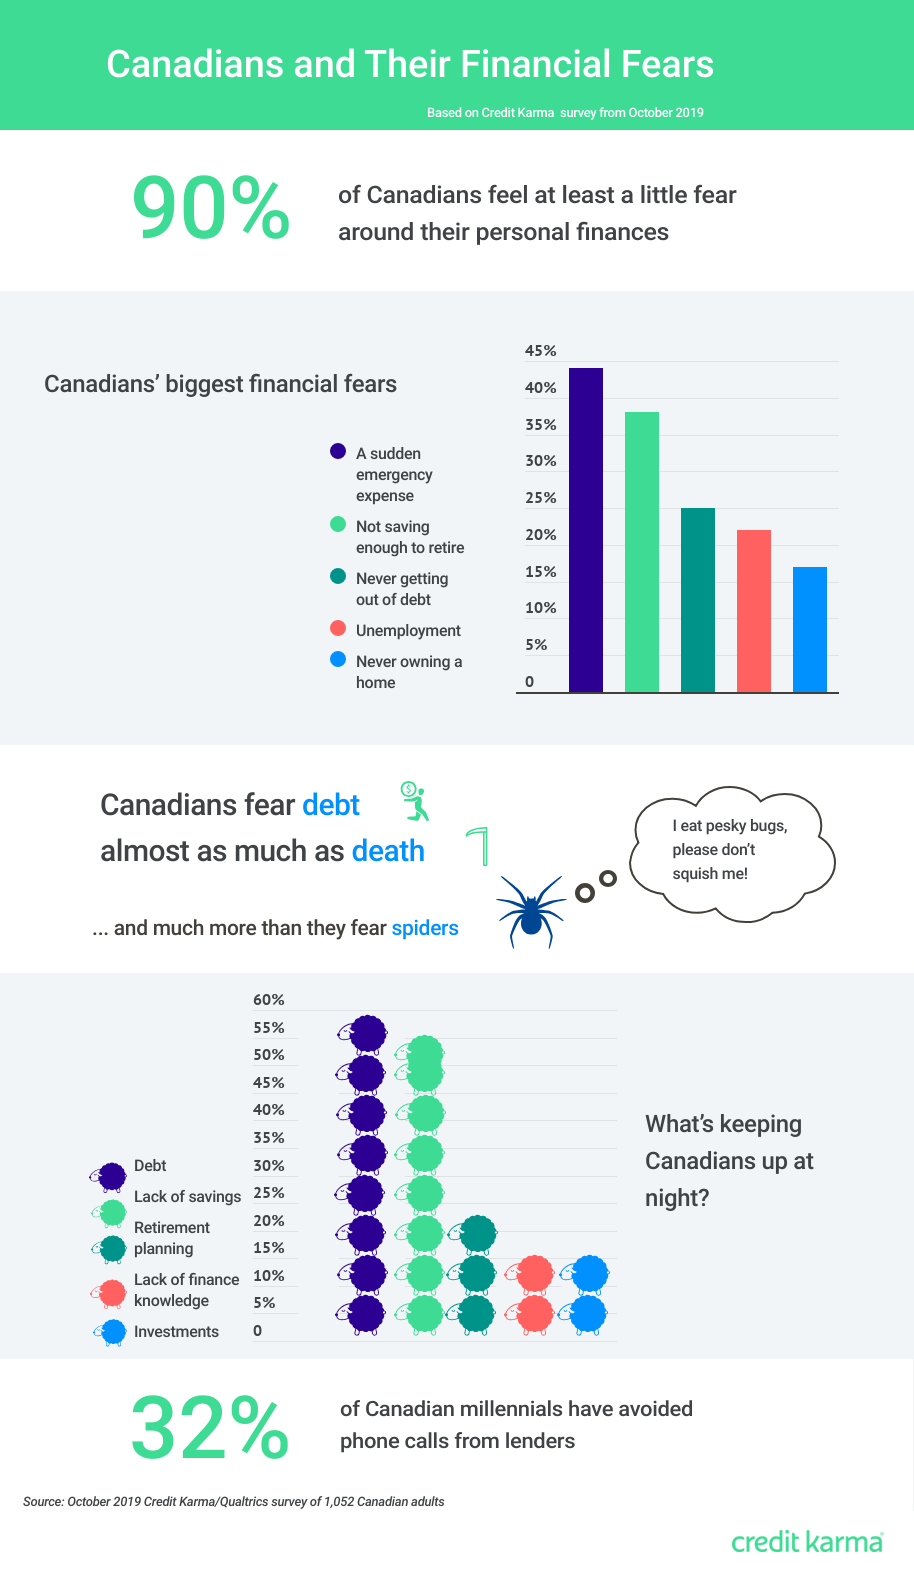 An infographic that summarizes the Canadian financial fears stats summarized in this article